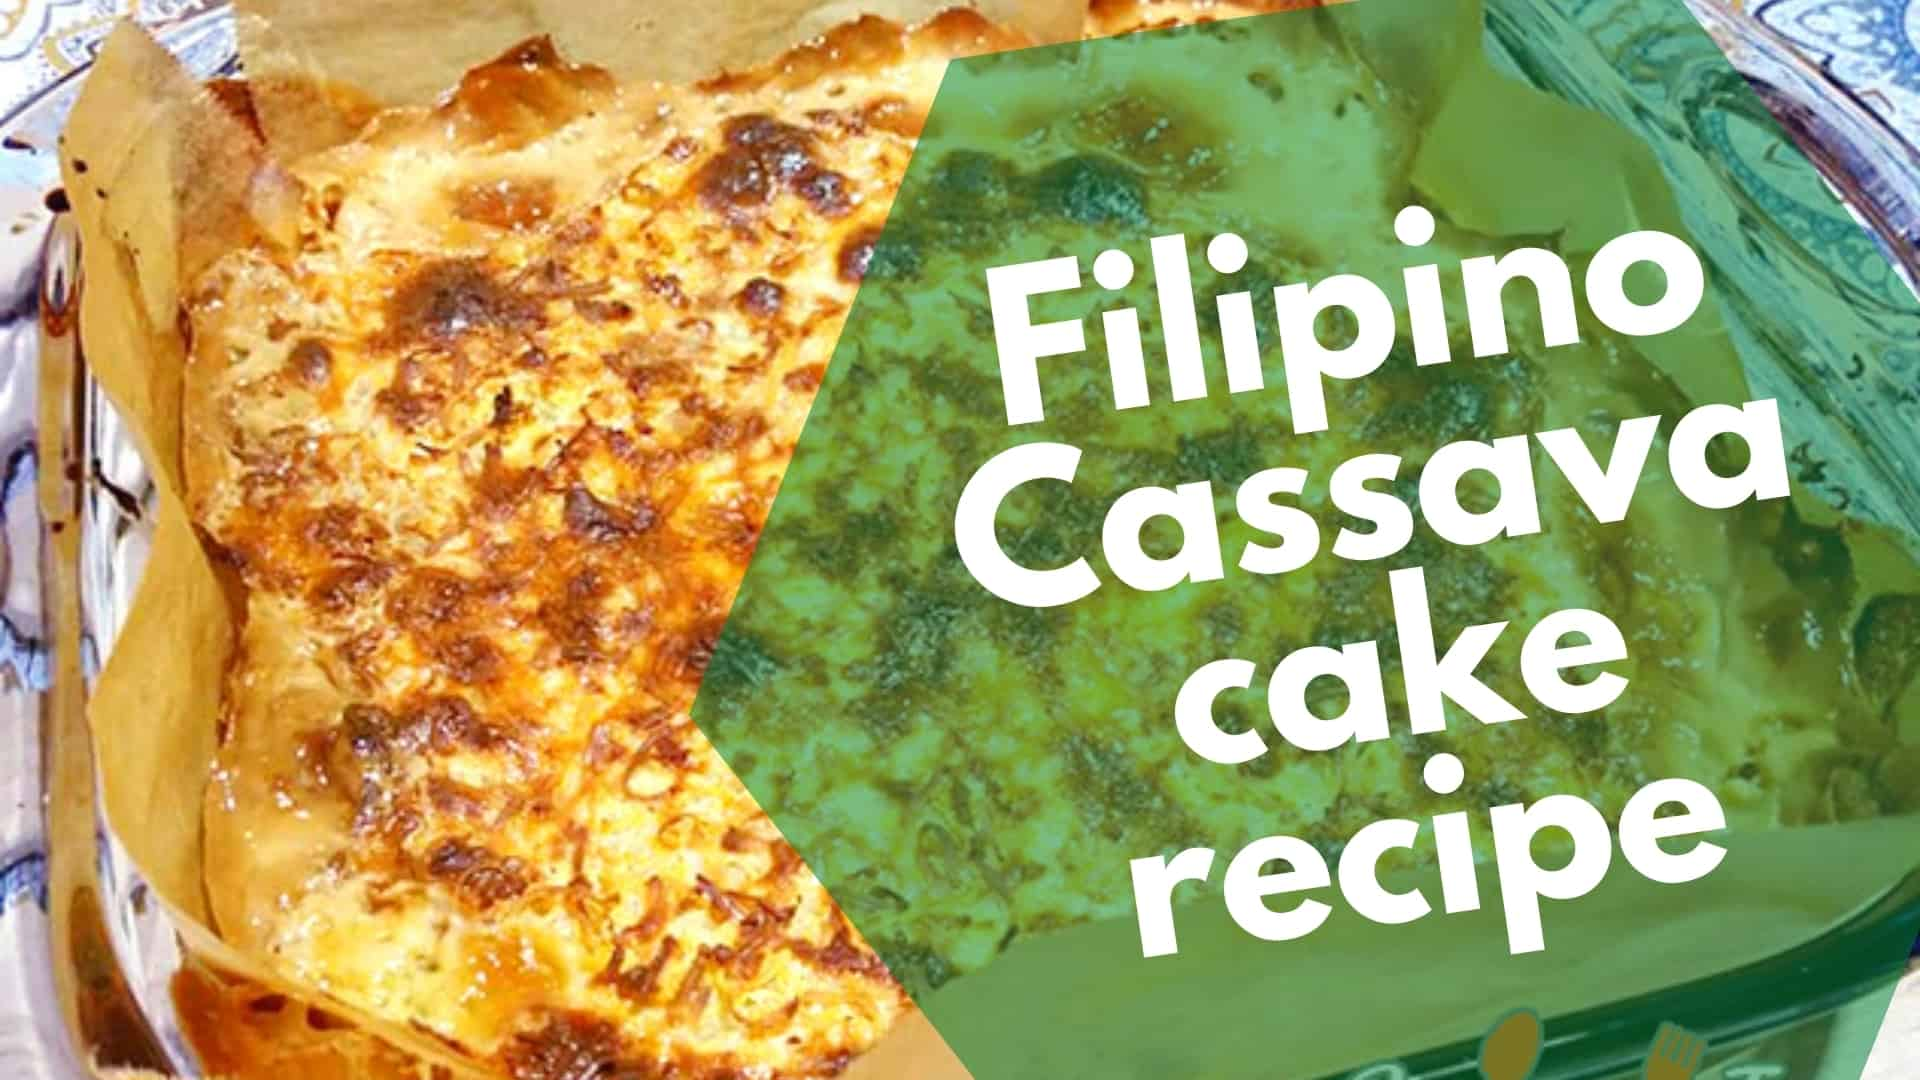 Easy, creamy & cheesy delicious cassava cake recipe